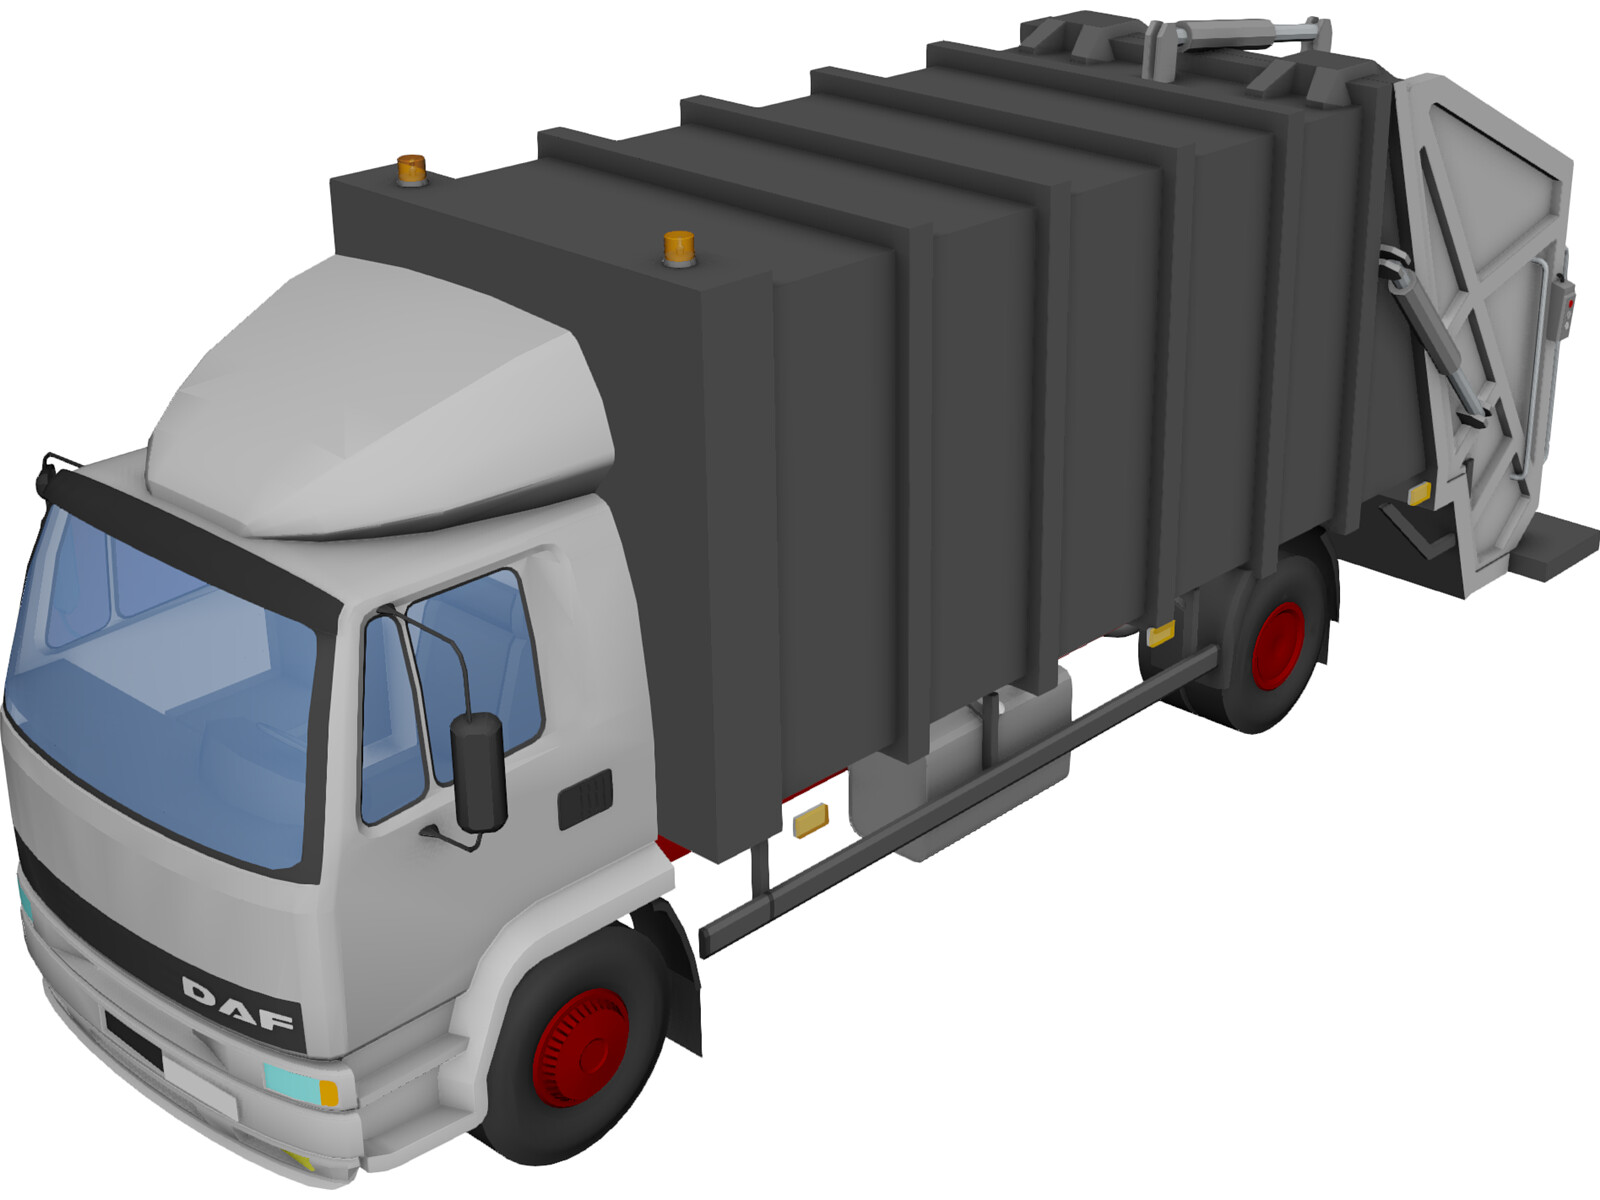 DAF 4X2 Trash Truck 3D Model